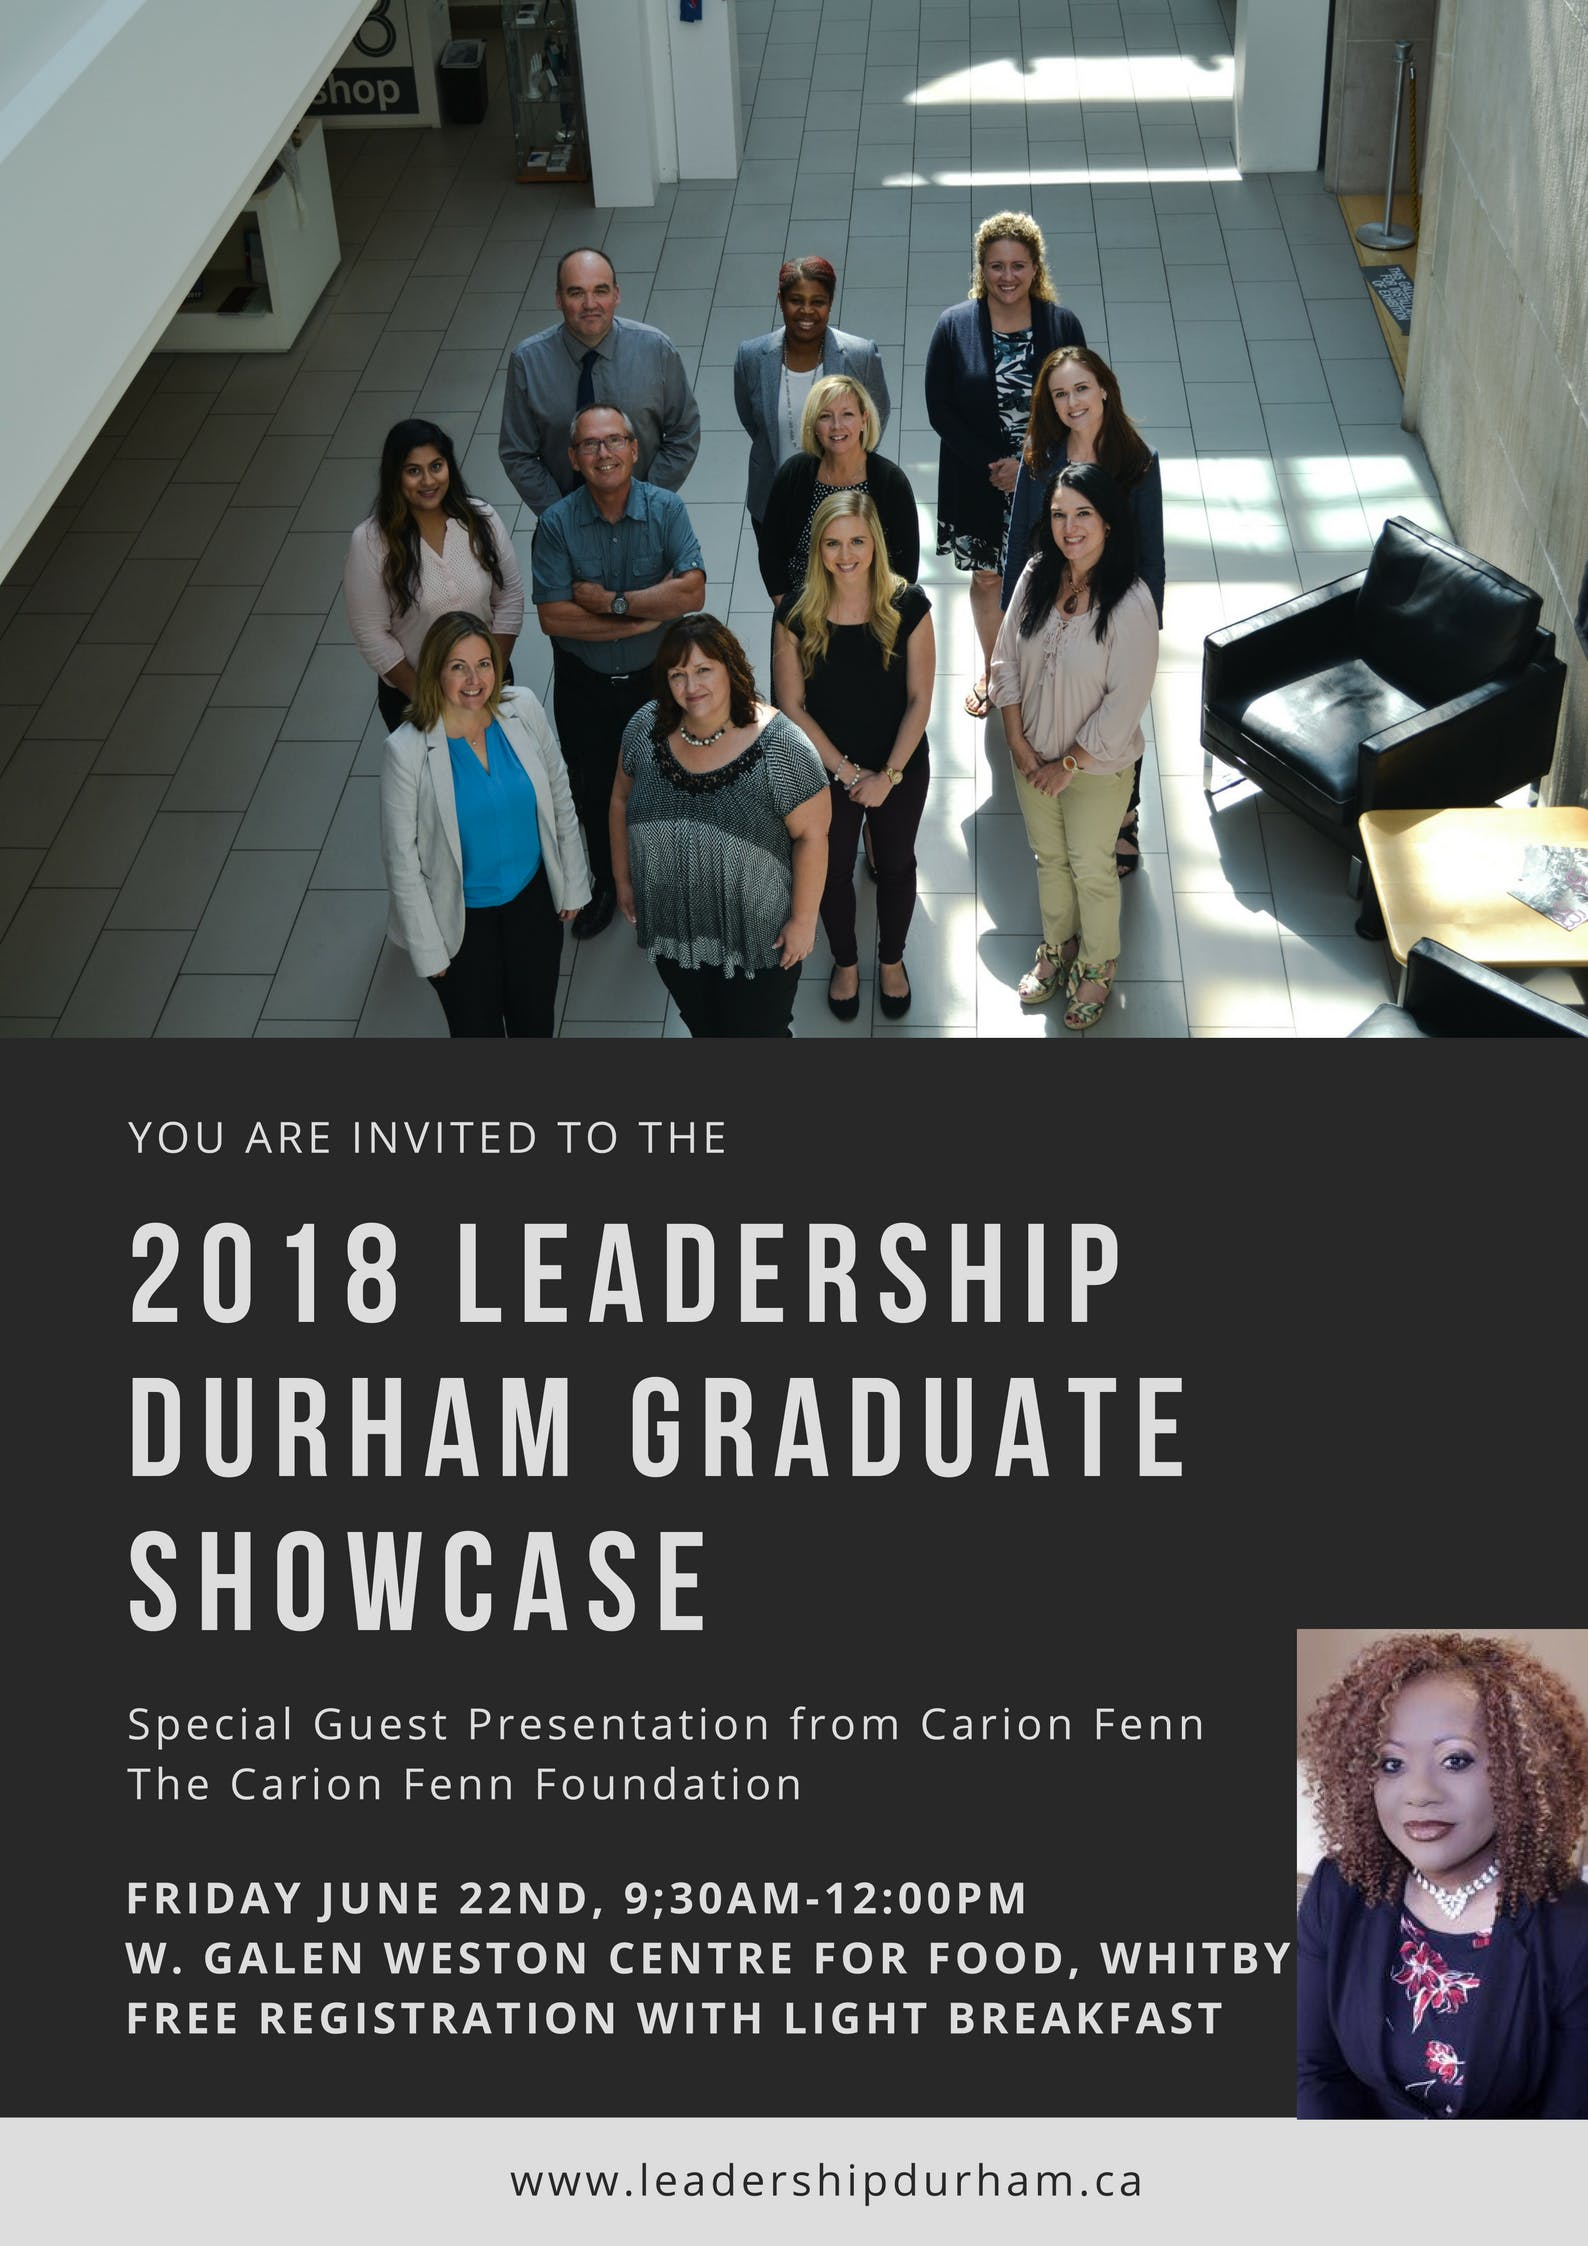 2018 Leadership Durham Graduate Showcase